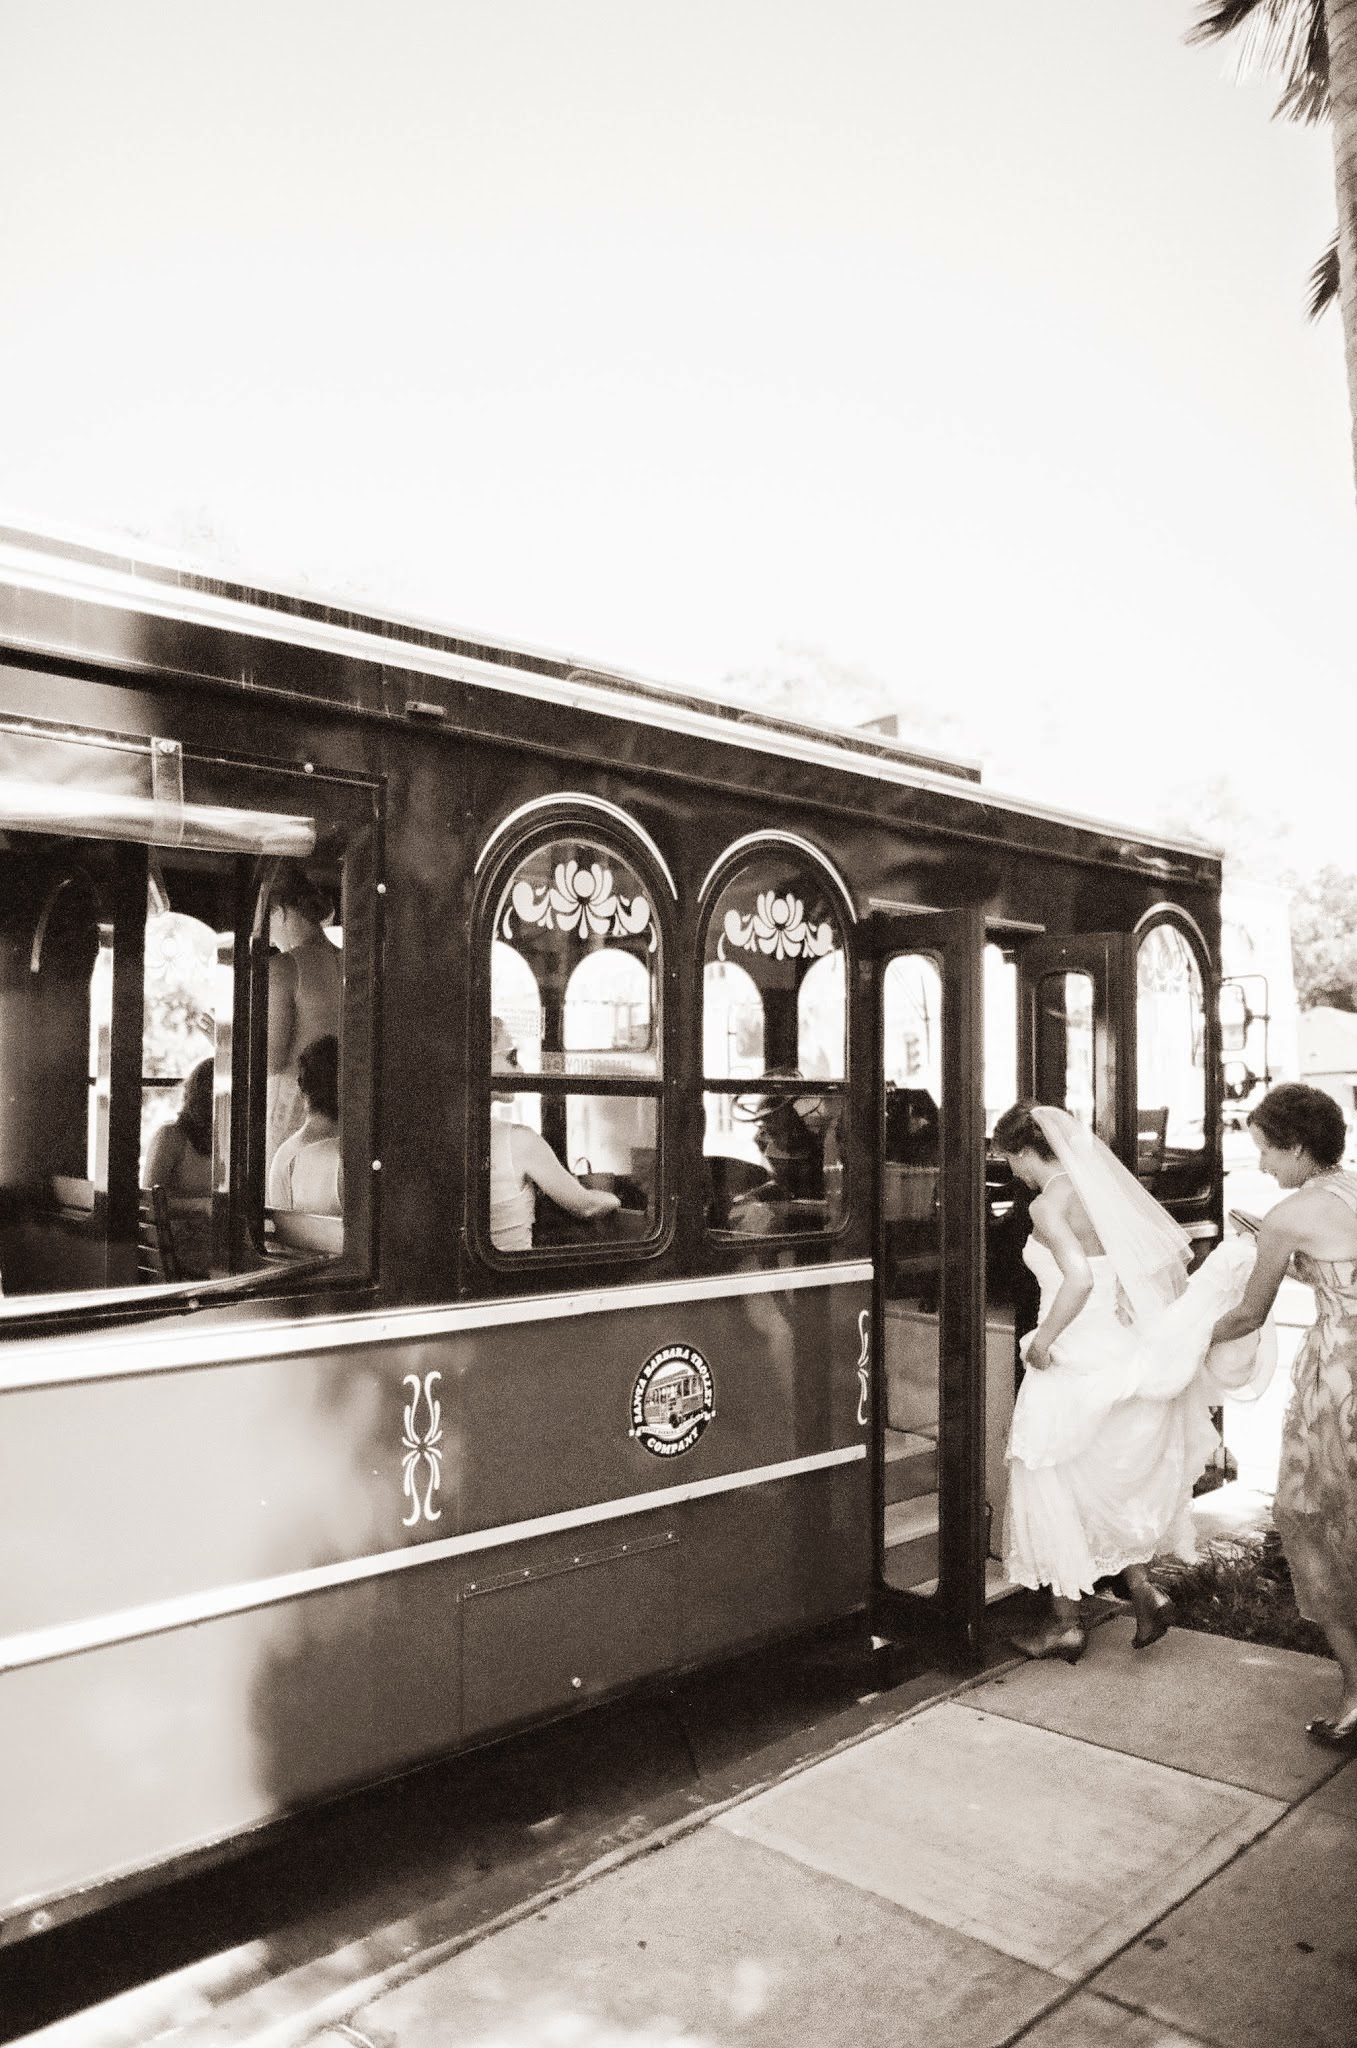 www.felicievents.com | Felici Events | Historical Museum Wedding | Santa Barbar Trolley